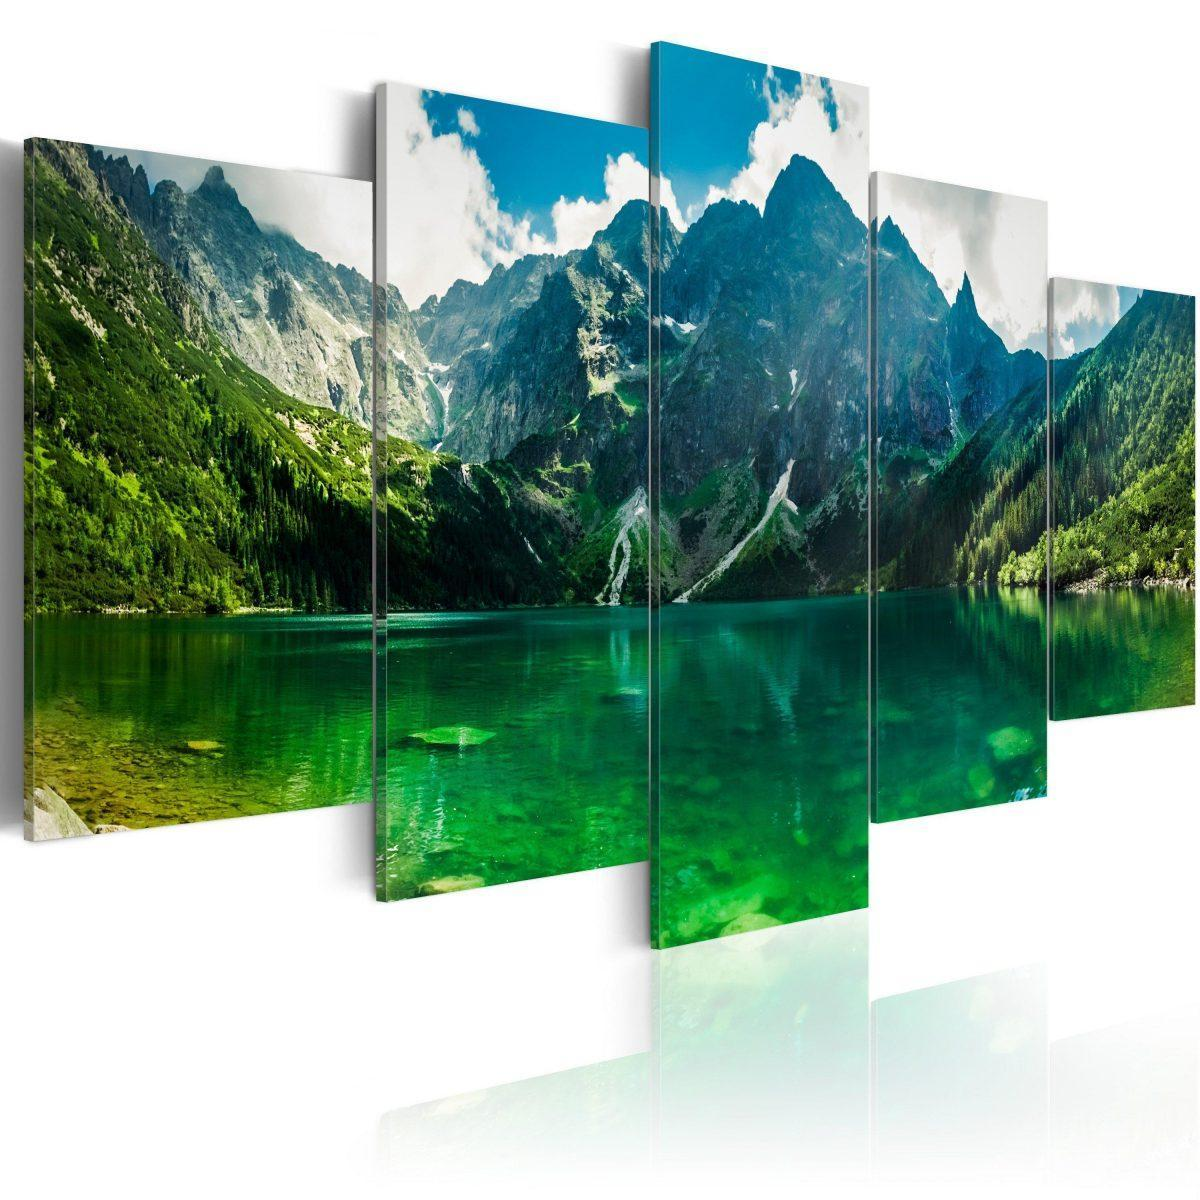 Canvas Tavla - Tranquility in the mountains - 100x50